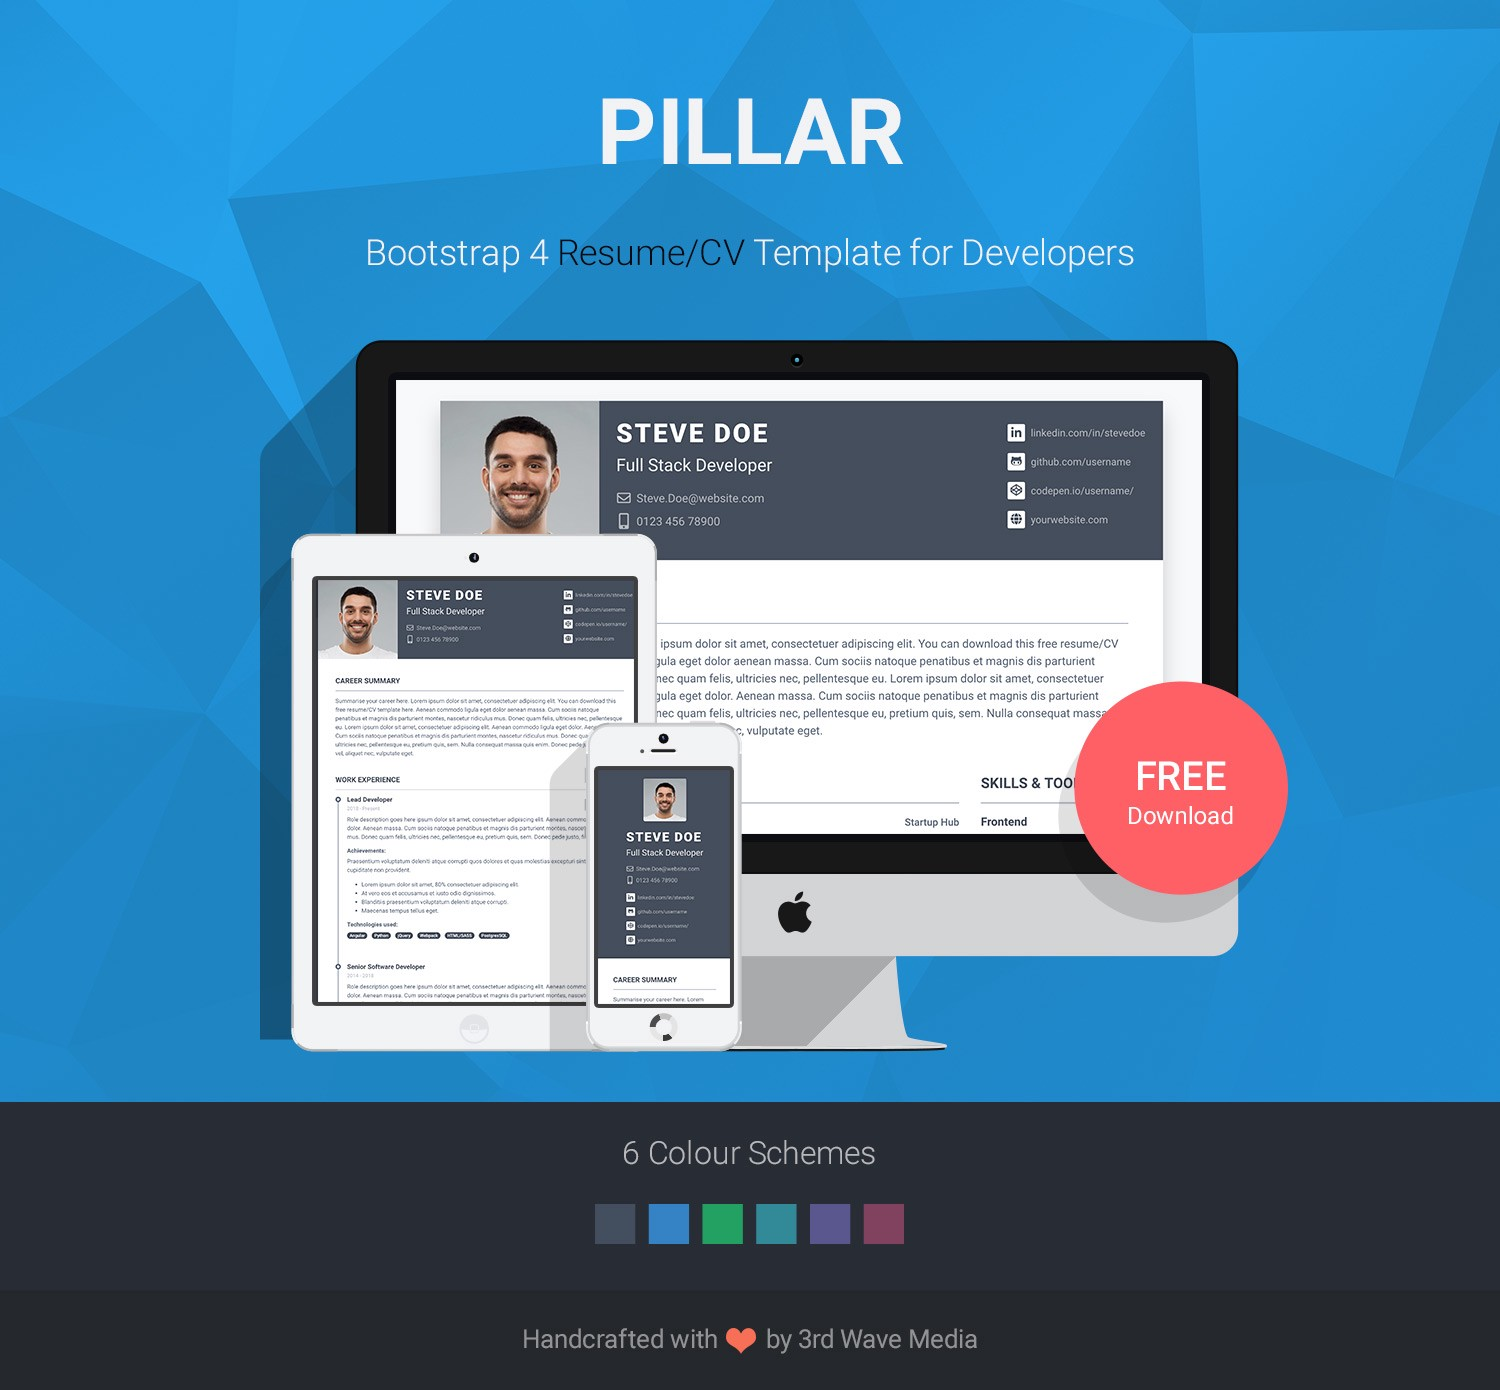 Pillar Is A Free Bootstrap 4 Resume CV Template I Made For Developers Built On And SASS Its Quick Easy To Change The Styling